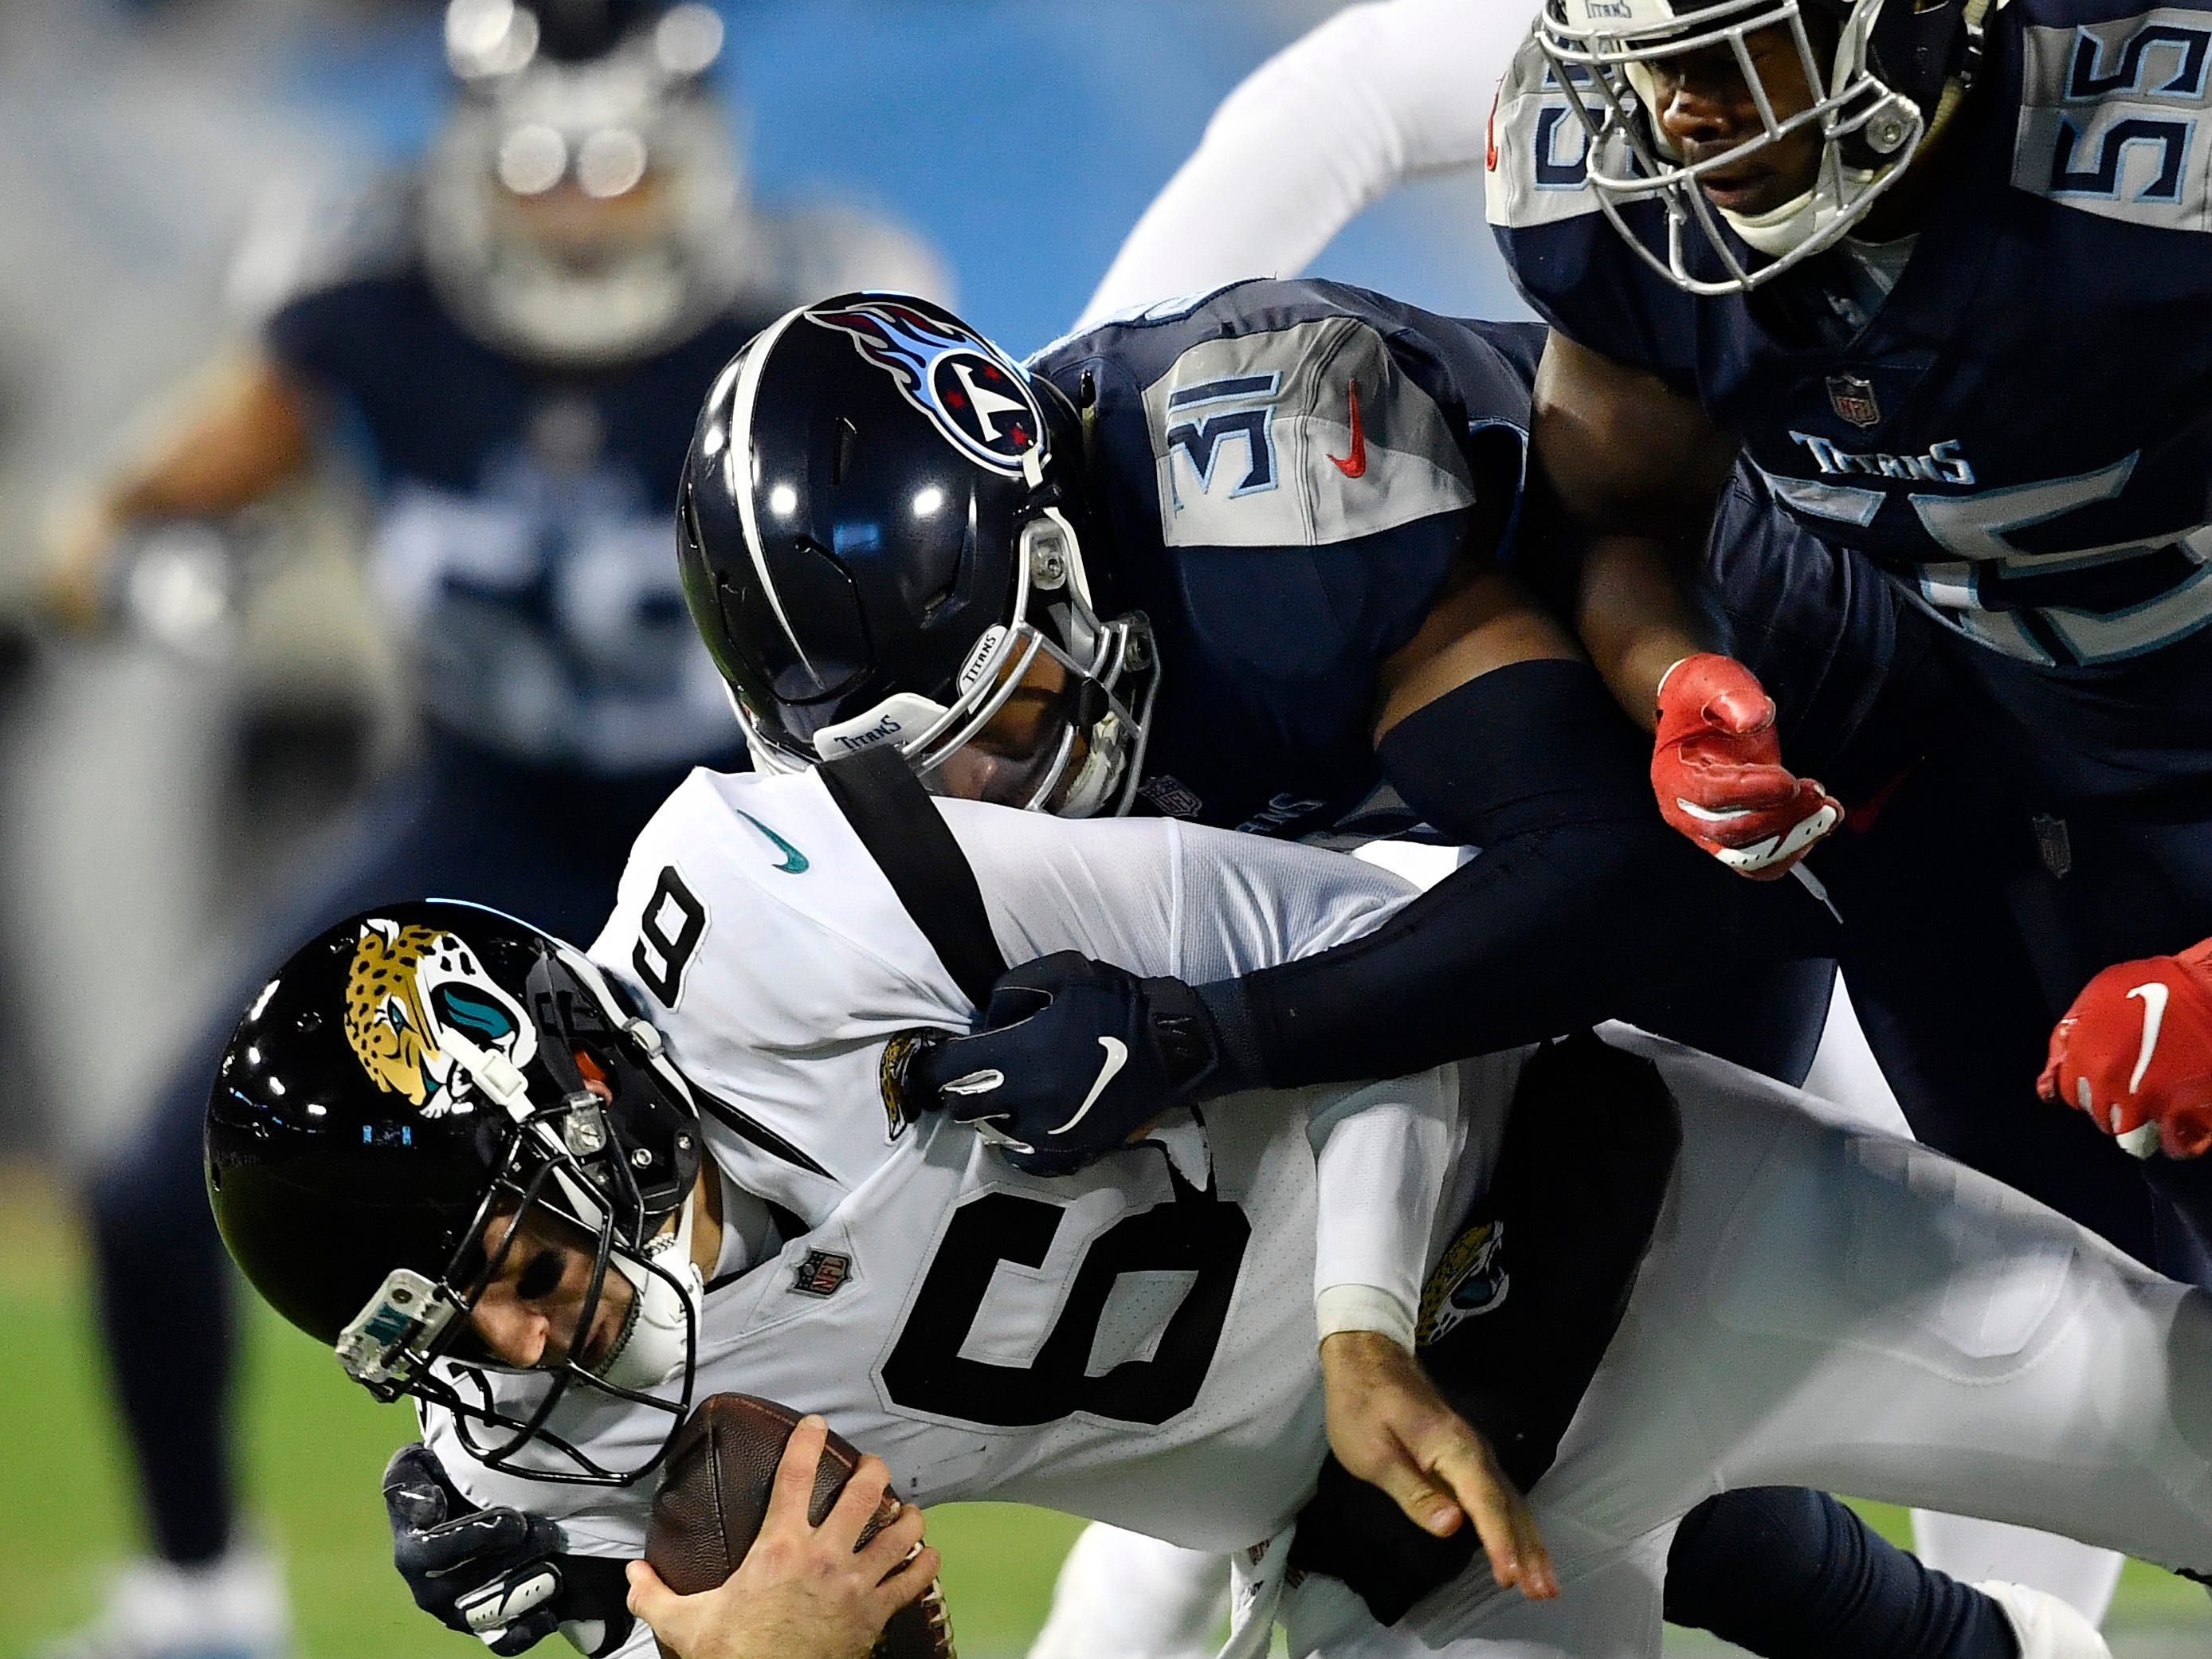 Titans safety Kevin Byard (31) and linebacker Jayon Brown (55) sack Jaguars quarterback Cody Kessler (6) in the first half at Nissan Stadium Thursday, Dec. 6, 2018, in Nashville, Tenn.